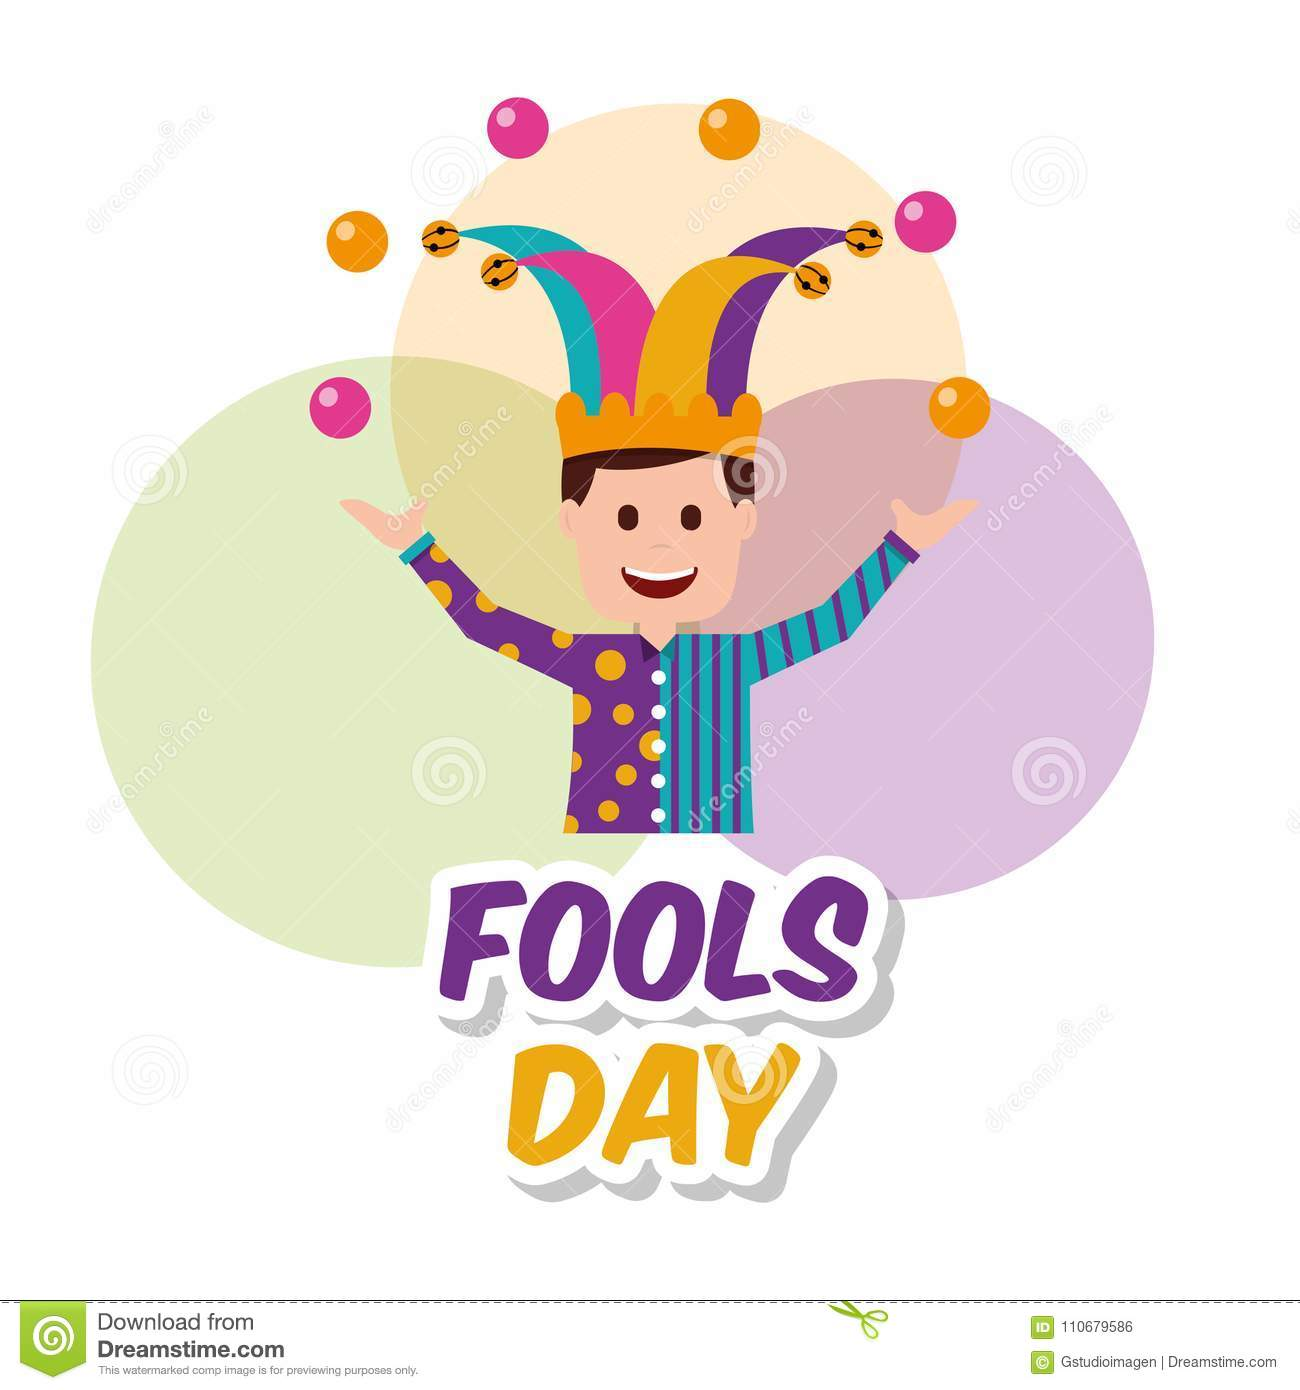 Fools Day Greeting Card Stock Vector Illustration Of Seamless